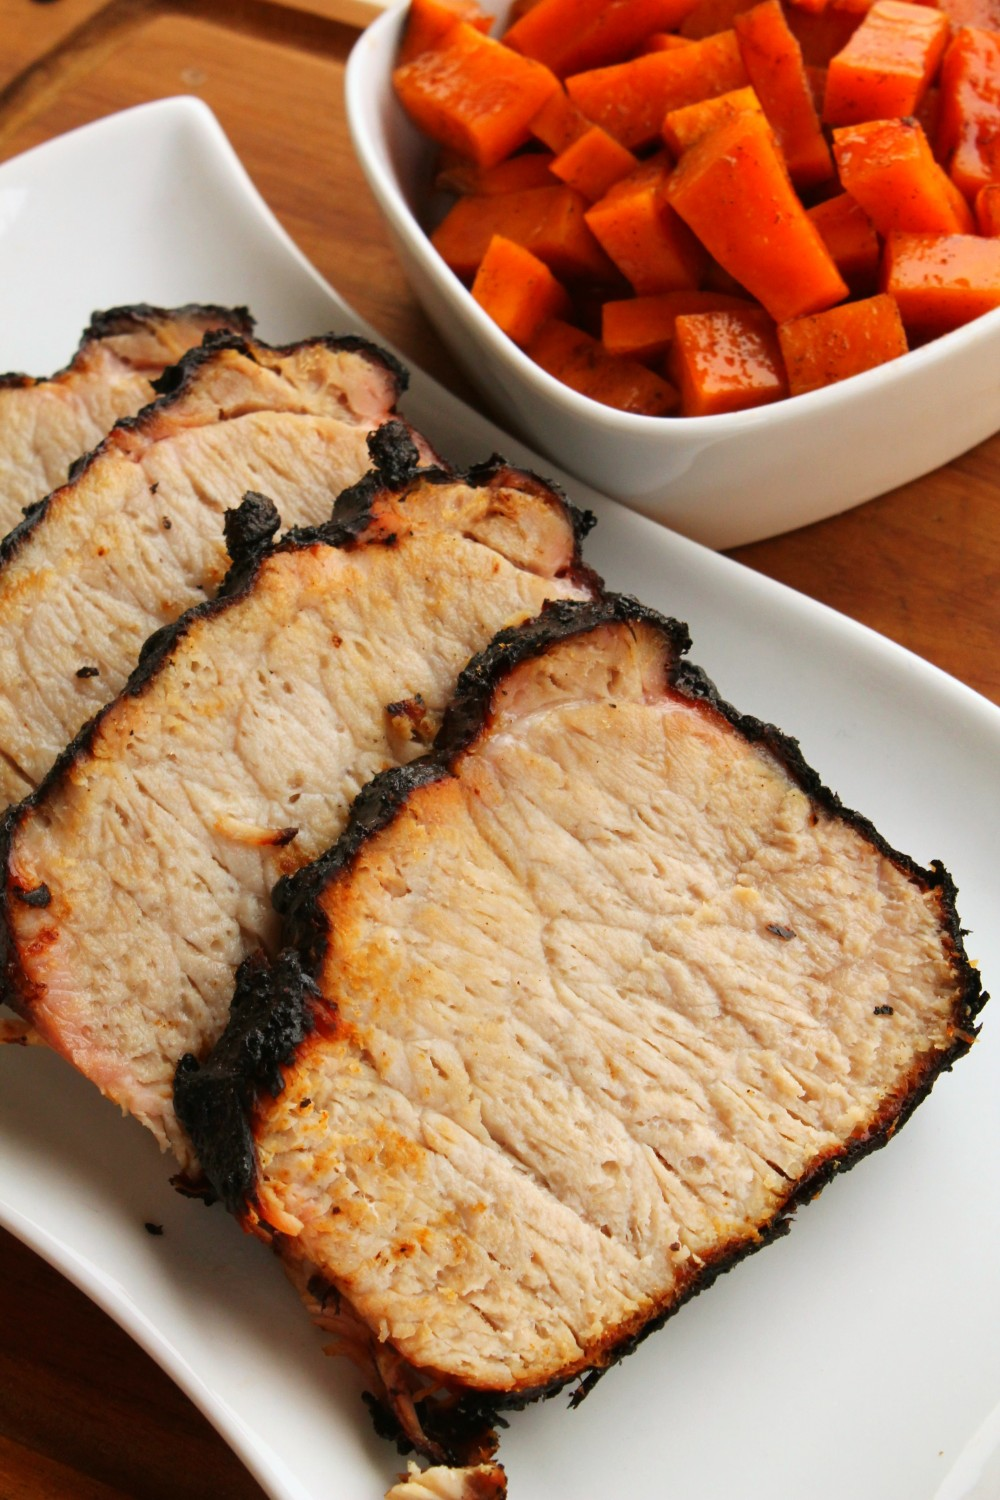 Pork loin grills so nicely - and this honey mustard marinade is PERFECT. You have to try this!